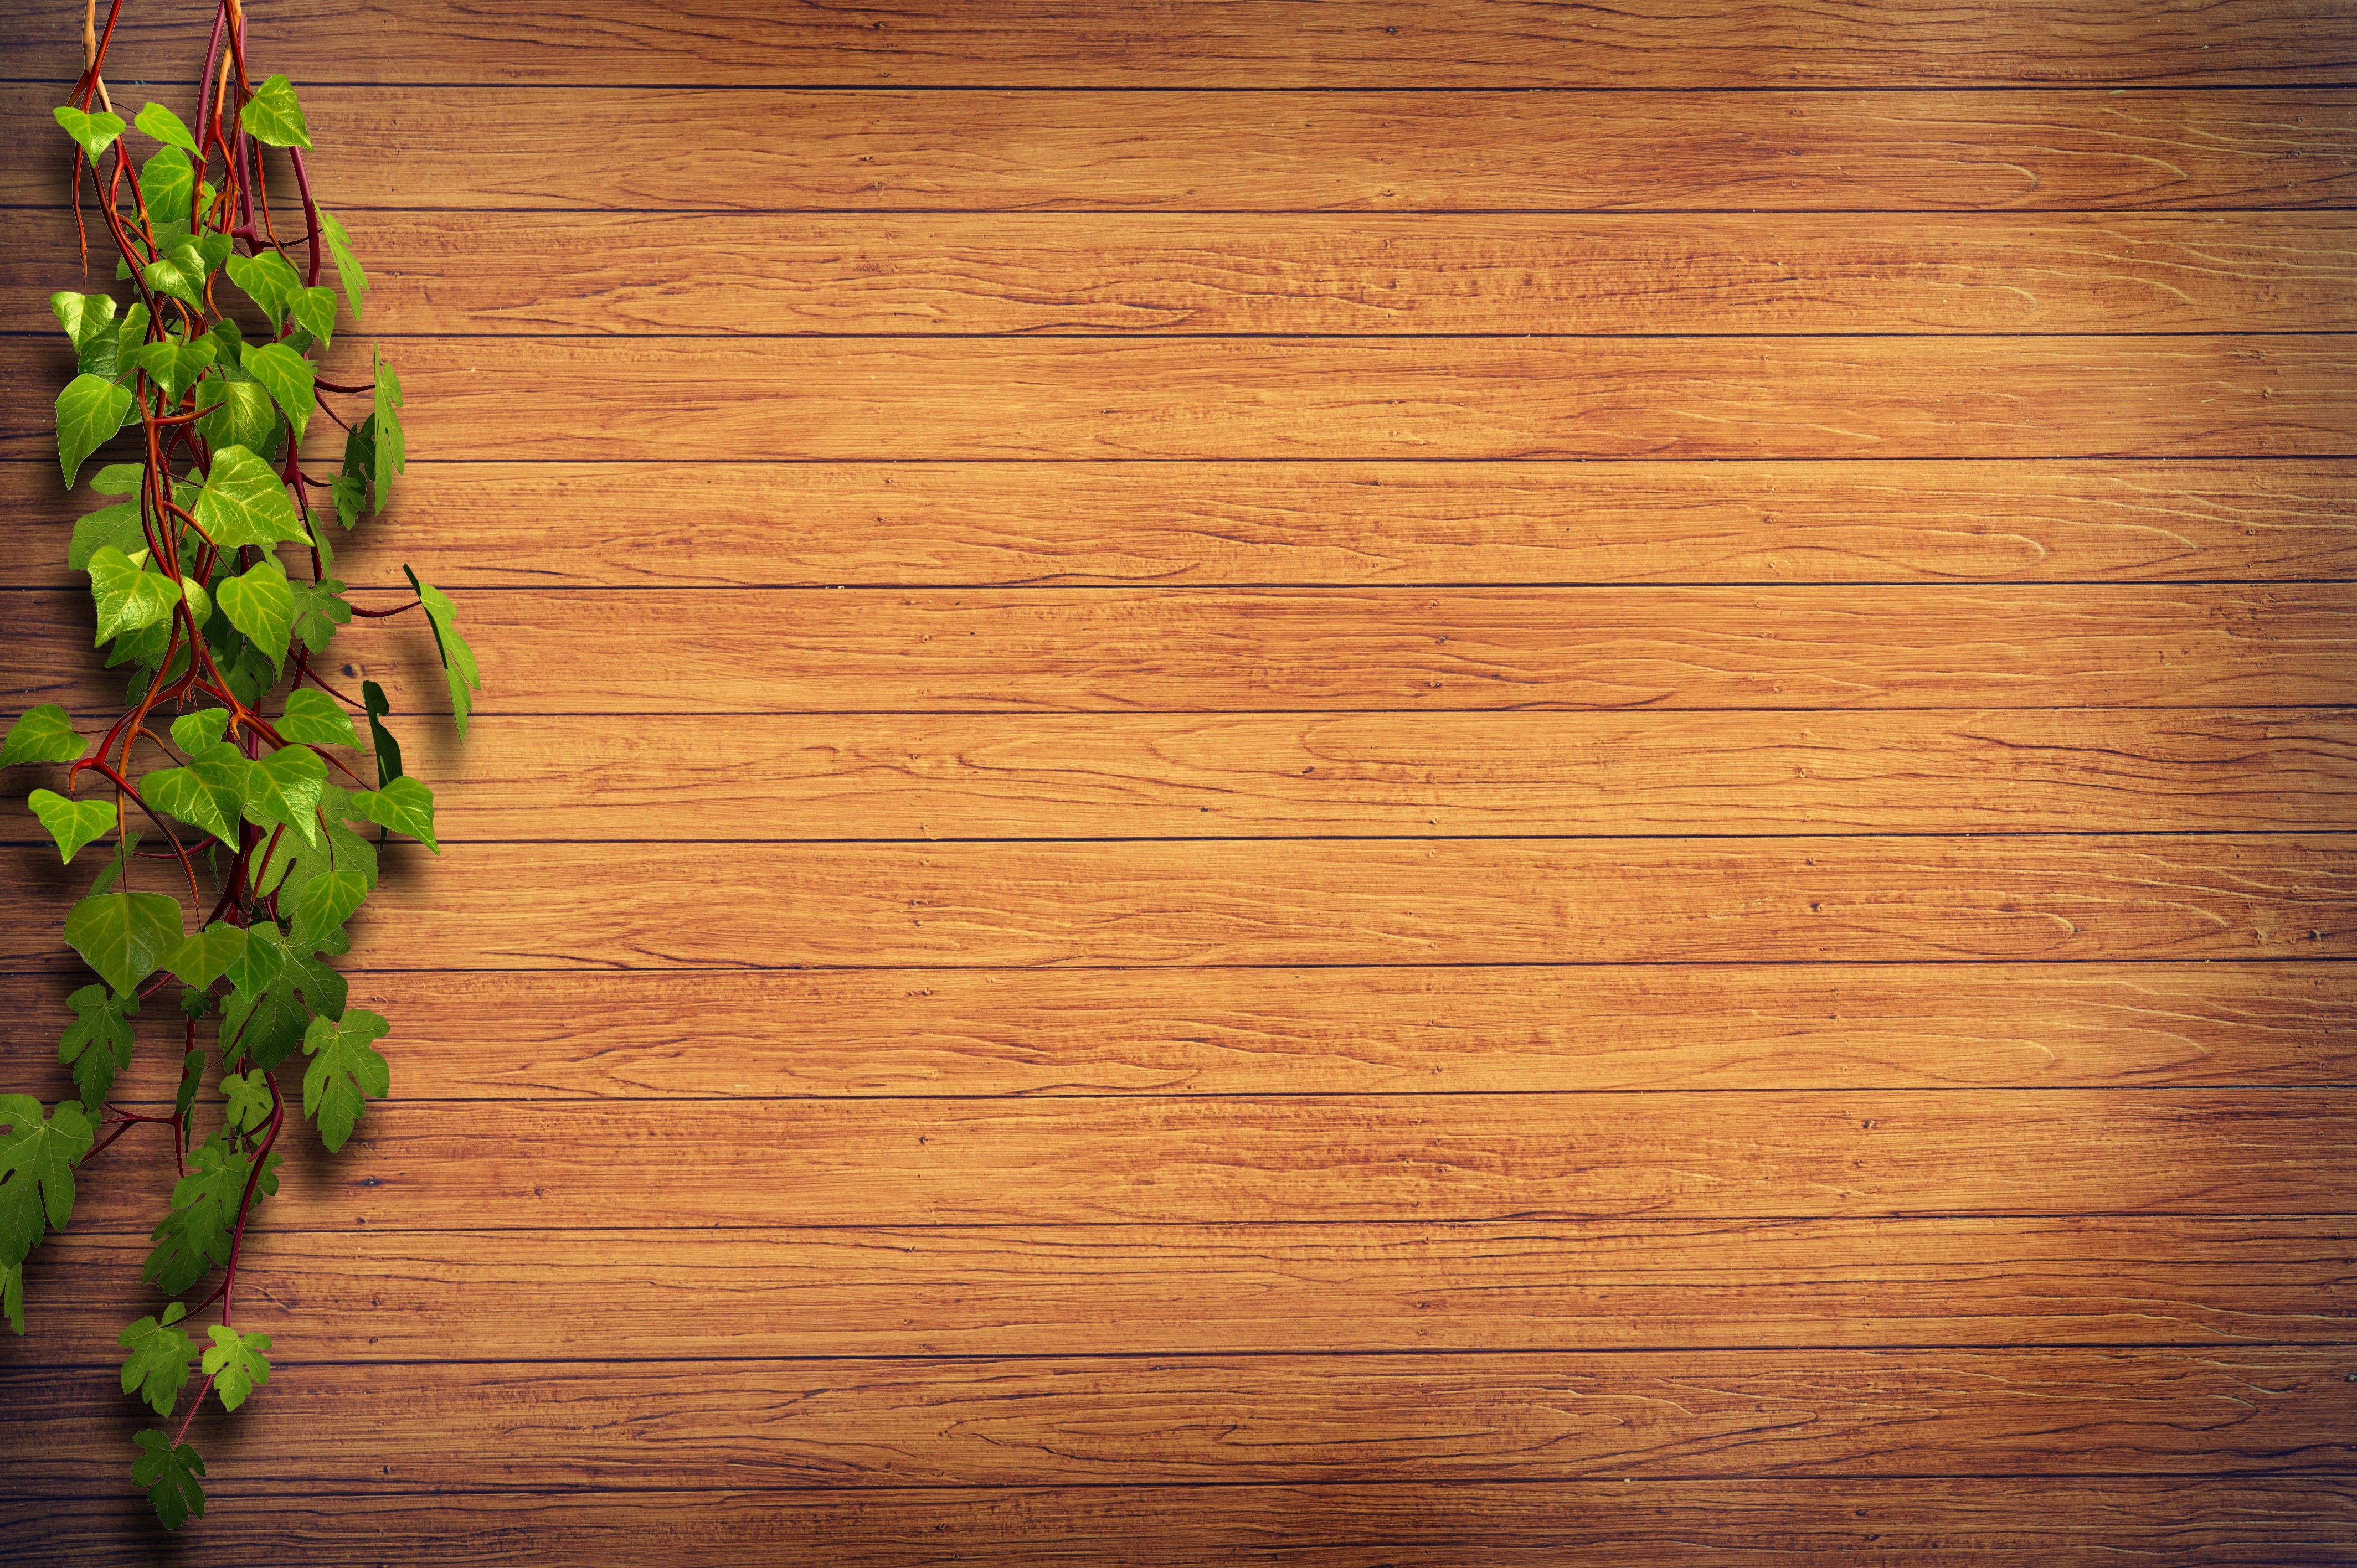 Brown Wooden Surface Beside Green Plant Illustration